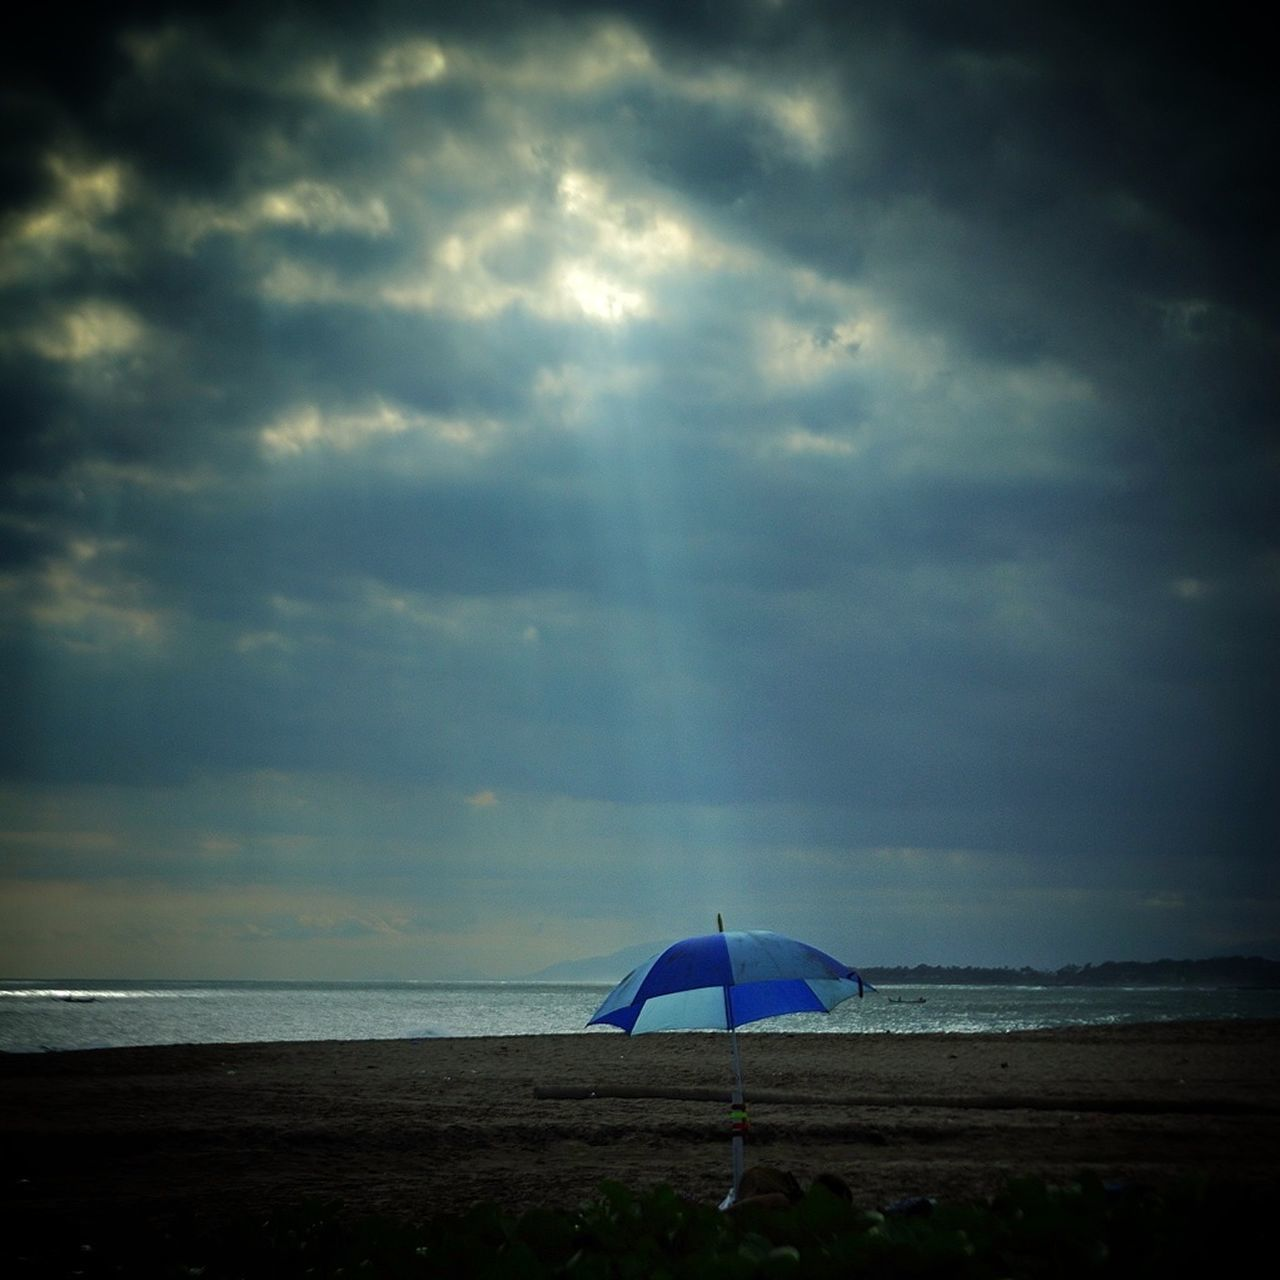 """""""Under the Umbrella"""" Belong Anywhere Melancholic Landscapes Sky And Clouds The Calmness Within"""